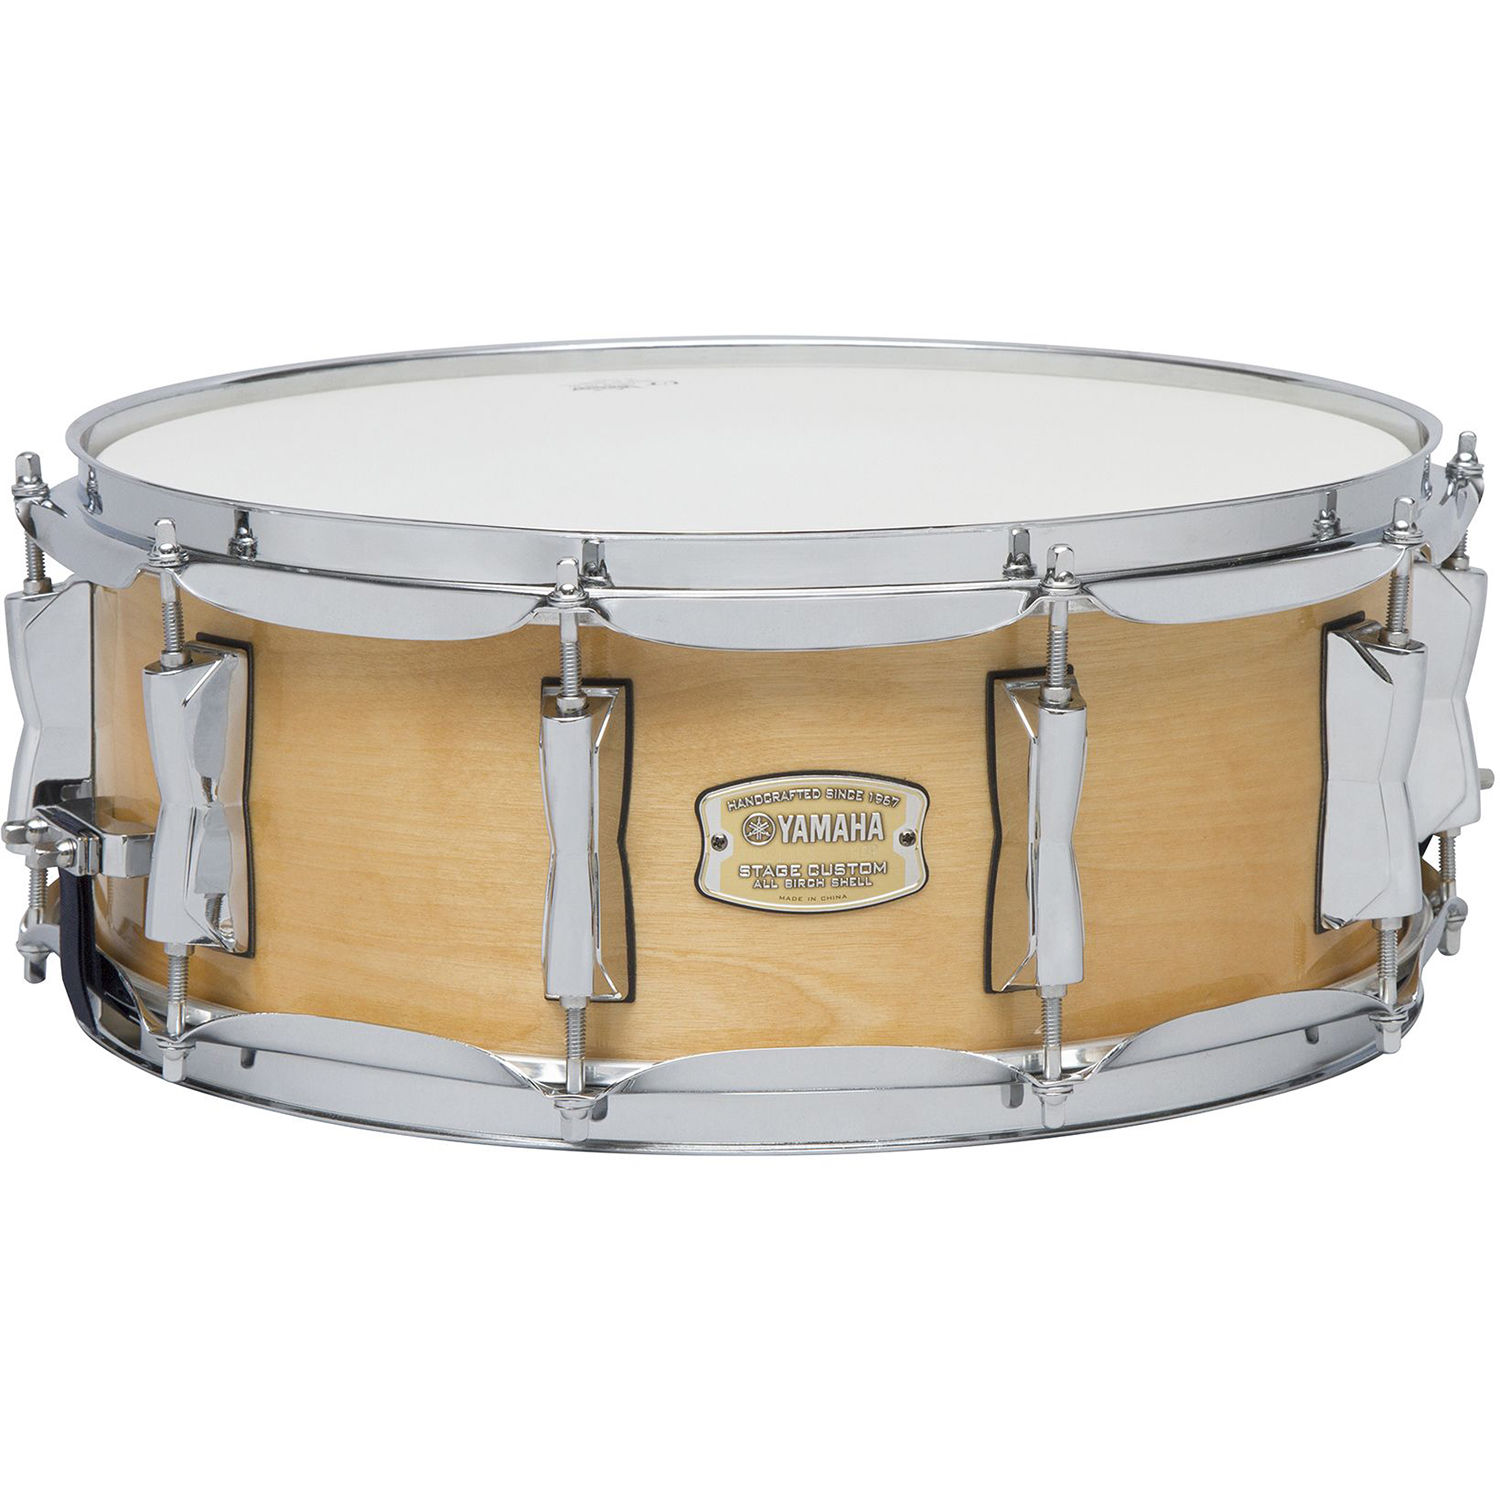 yamaha sbs1455nw stage custom birch snare sbs 1455nw b h photo. Black Bedroom Furniture Sets. Home Design Ideas